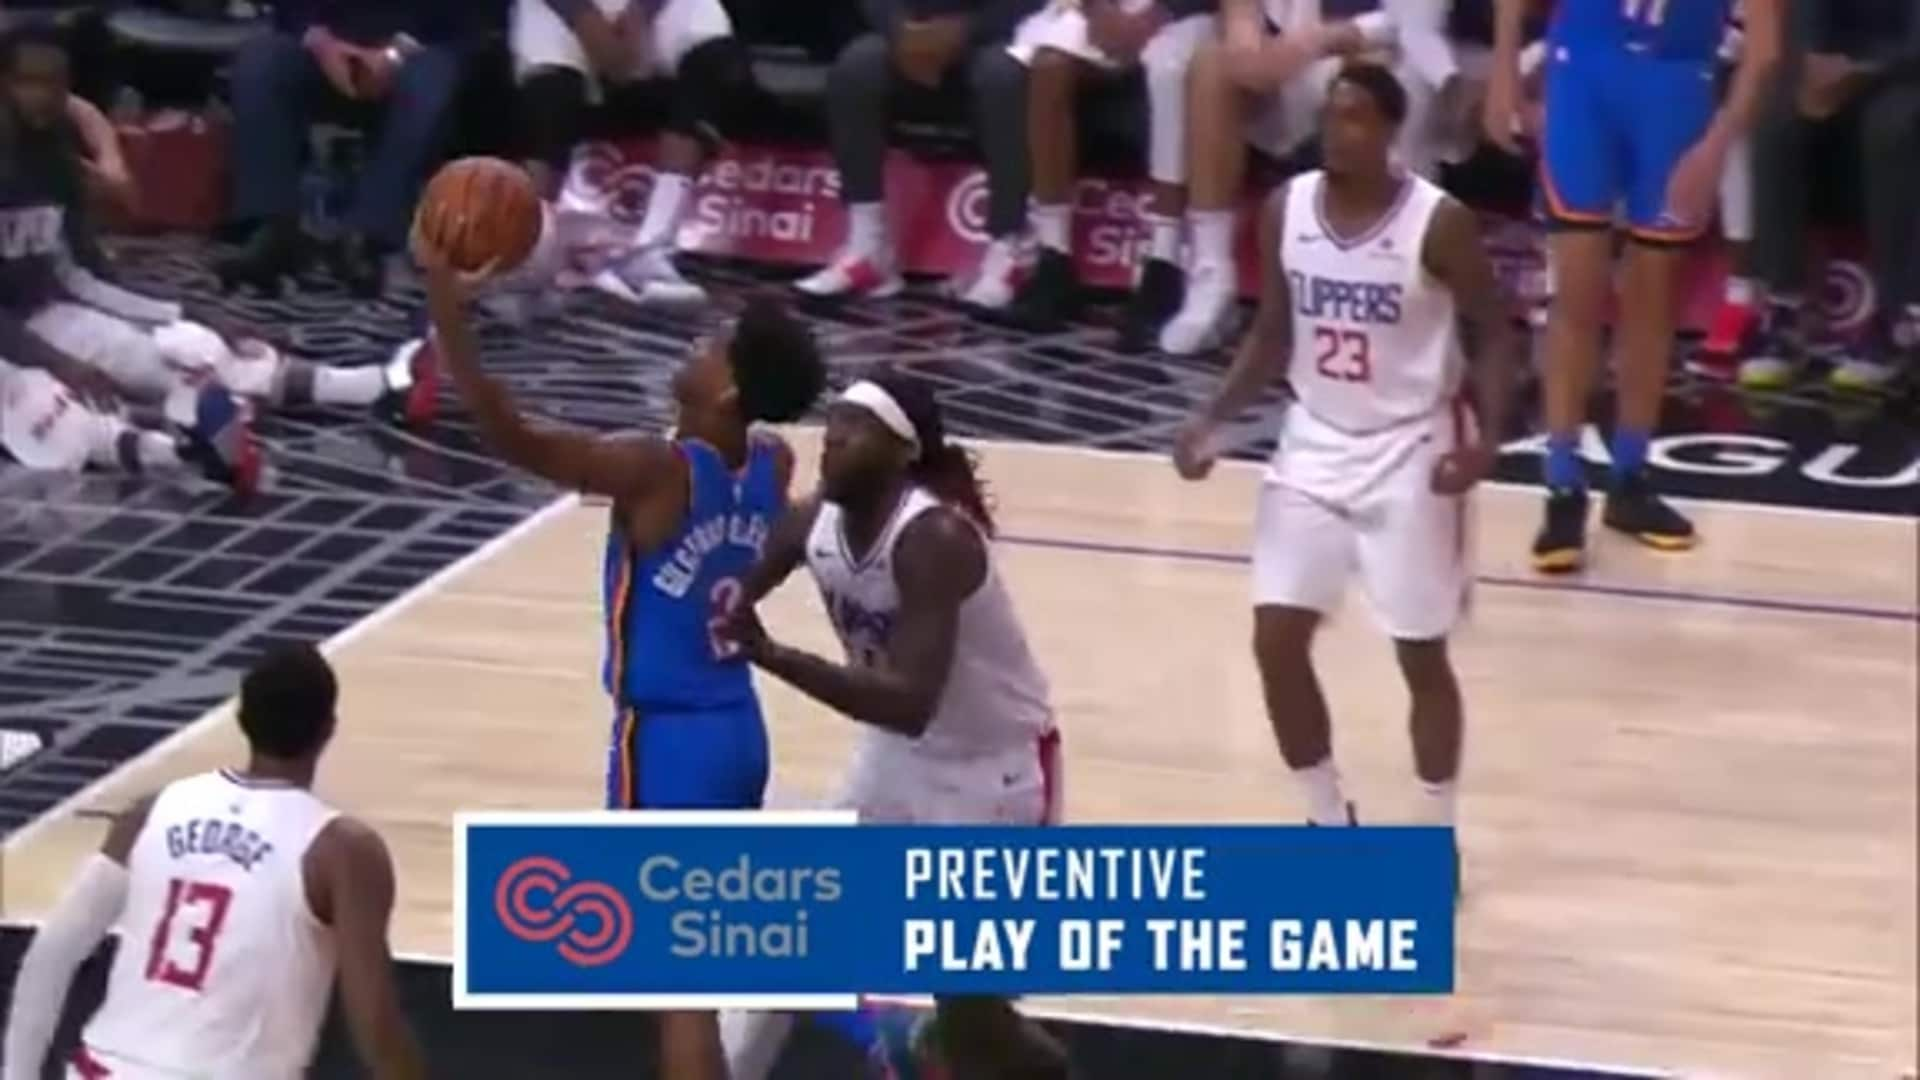 Cedars-Sinai Preventive Play of the Game | Clippers vs. Thunder (11.18.19)